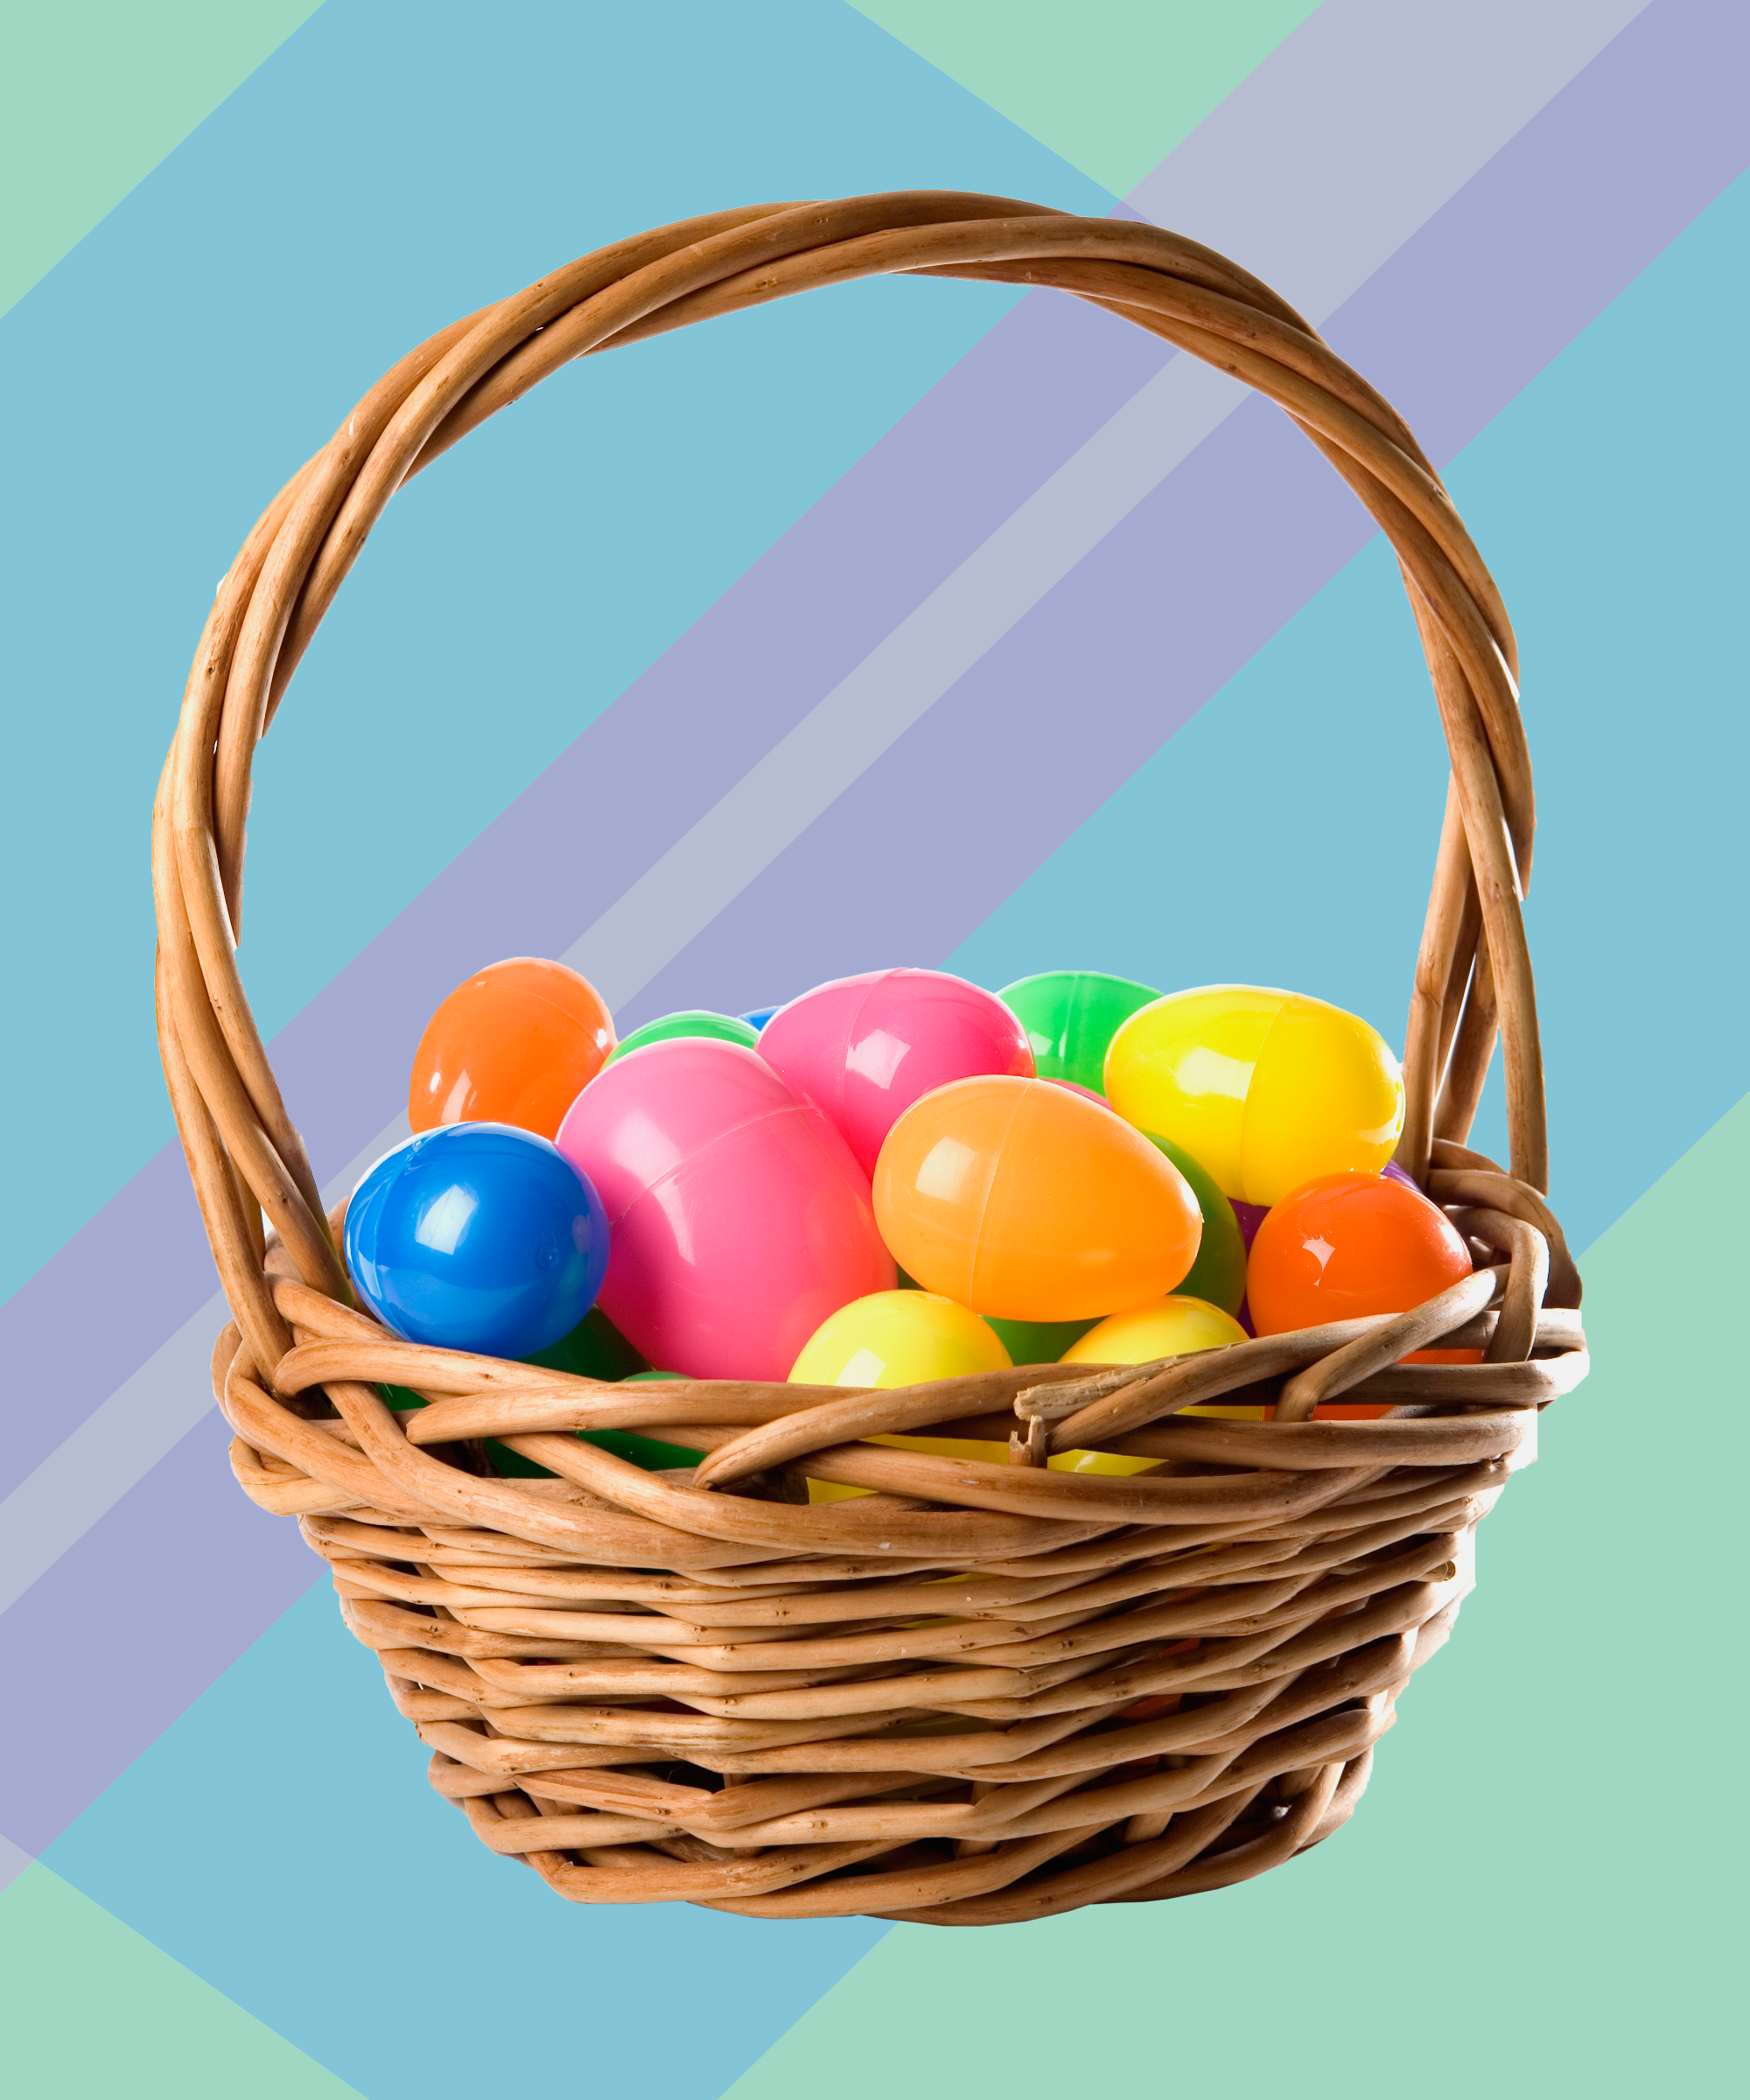 Easter Eggs In A Basket | www.pixshark.com - Images ...